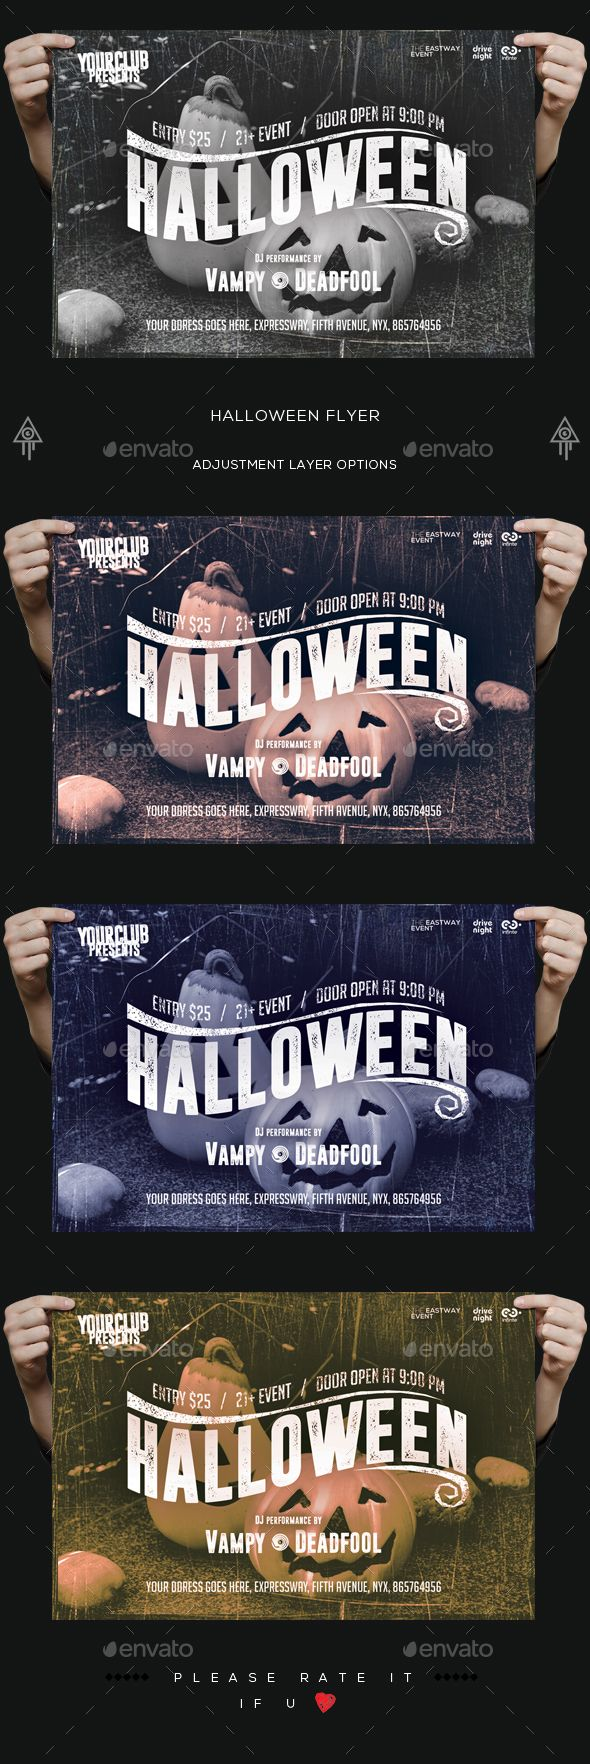 The 414 best images about Halloween Flyer Template on Pinterest ...